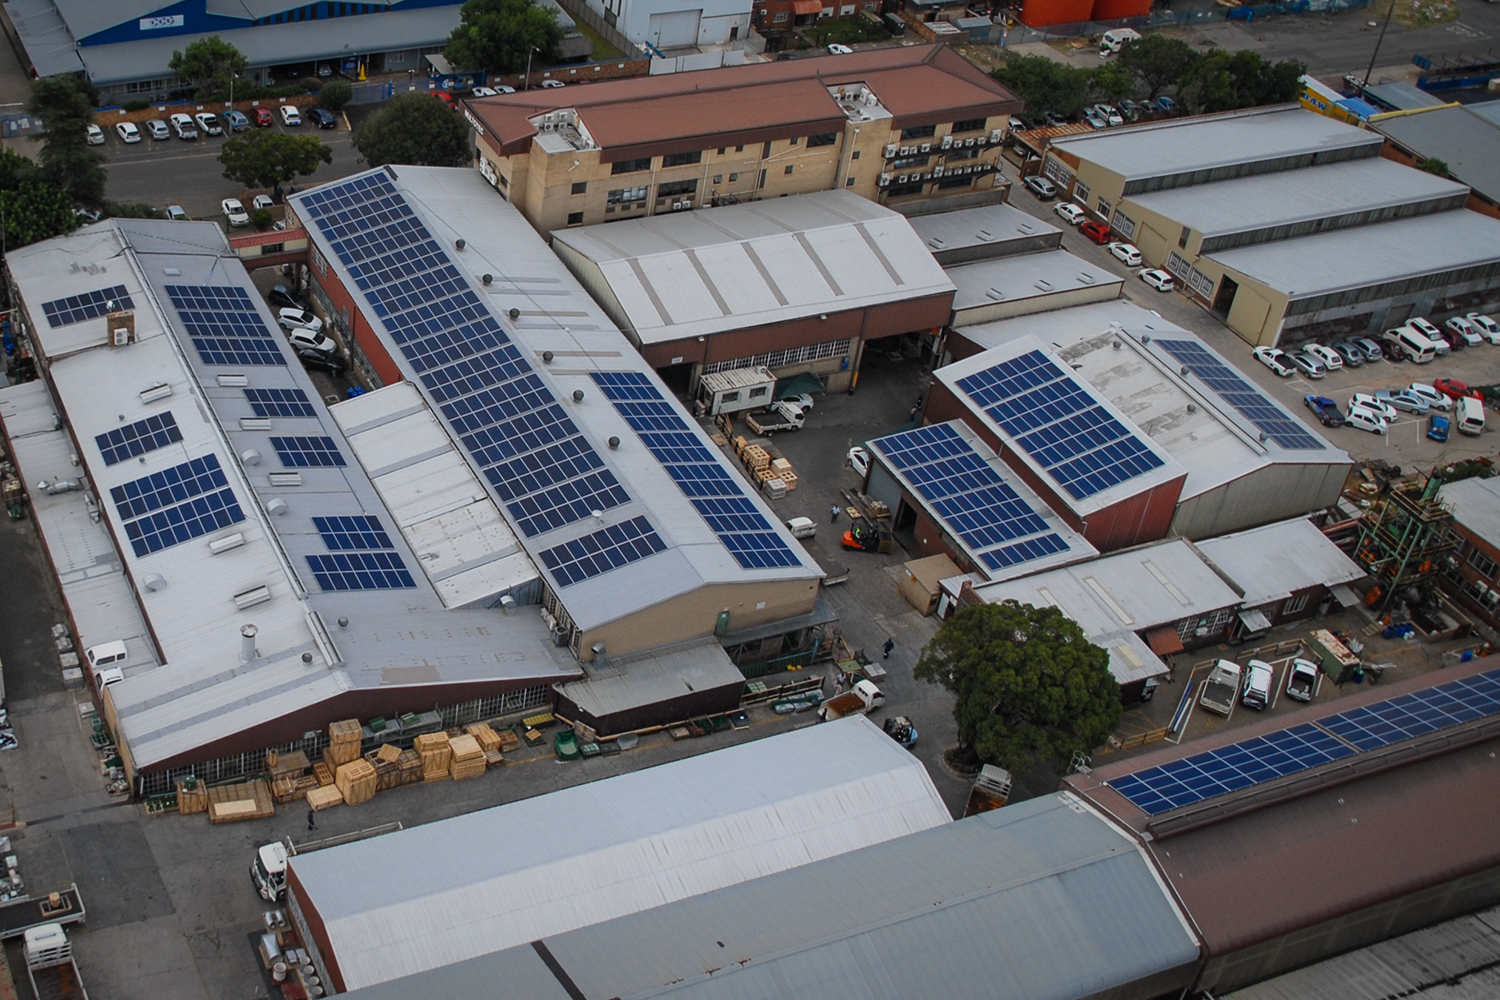 Multotec installs green energy